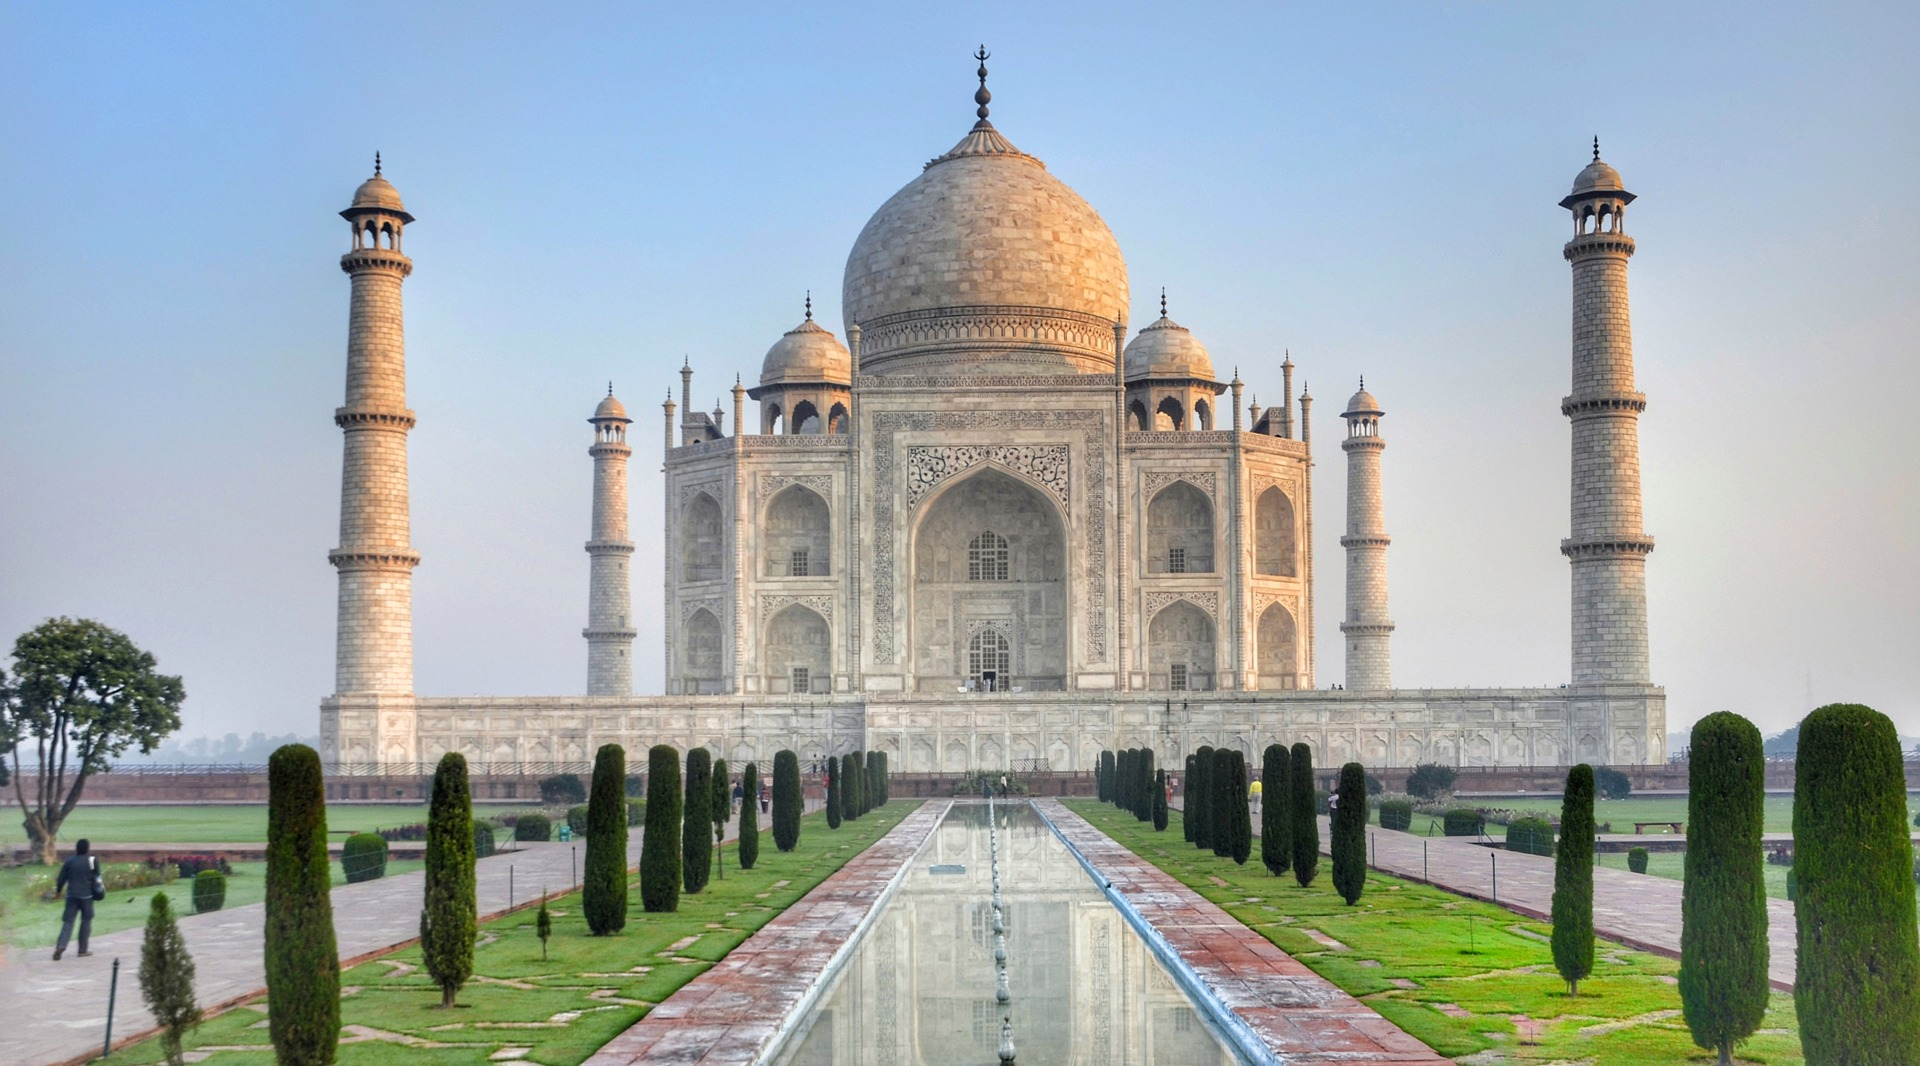 Taj Mahal City Of Agra To Tackle Air Pollution